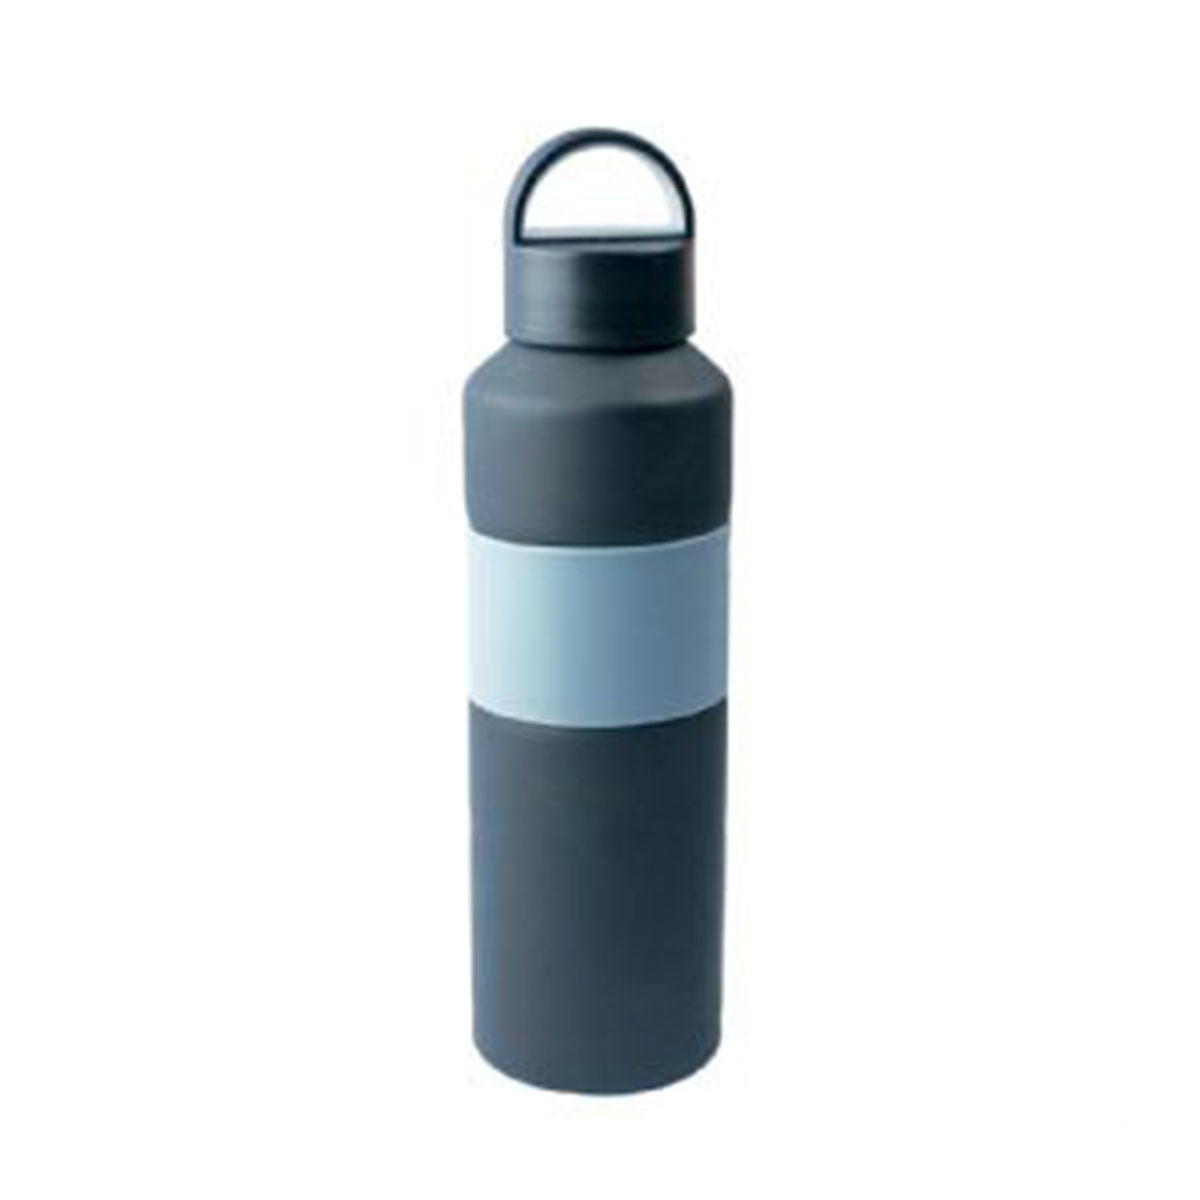 The Grip Drink Bottle-Grey/Black